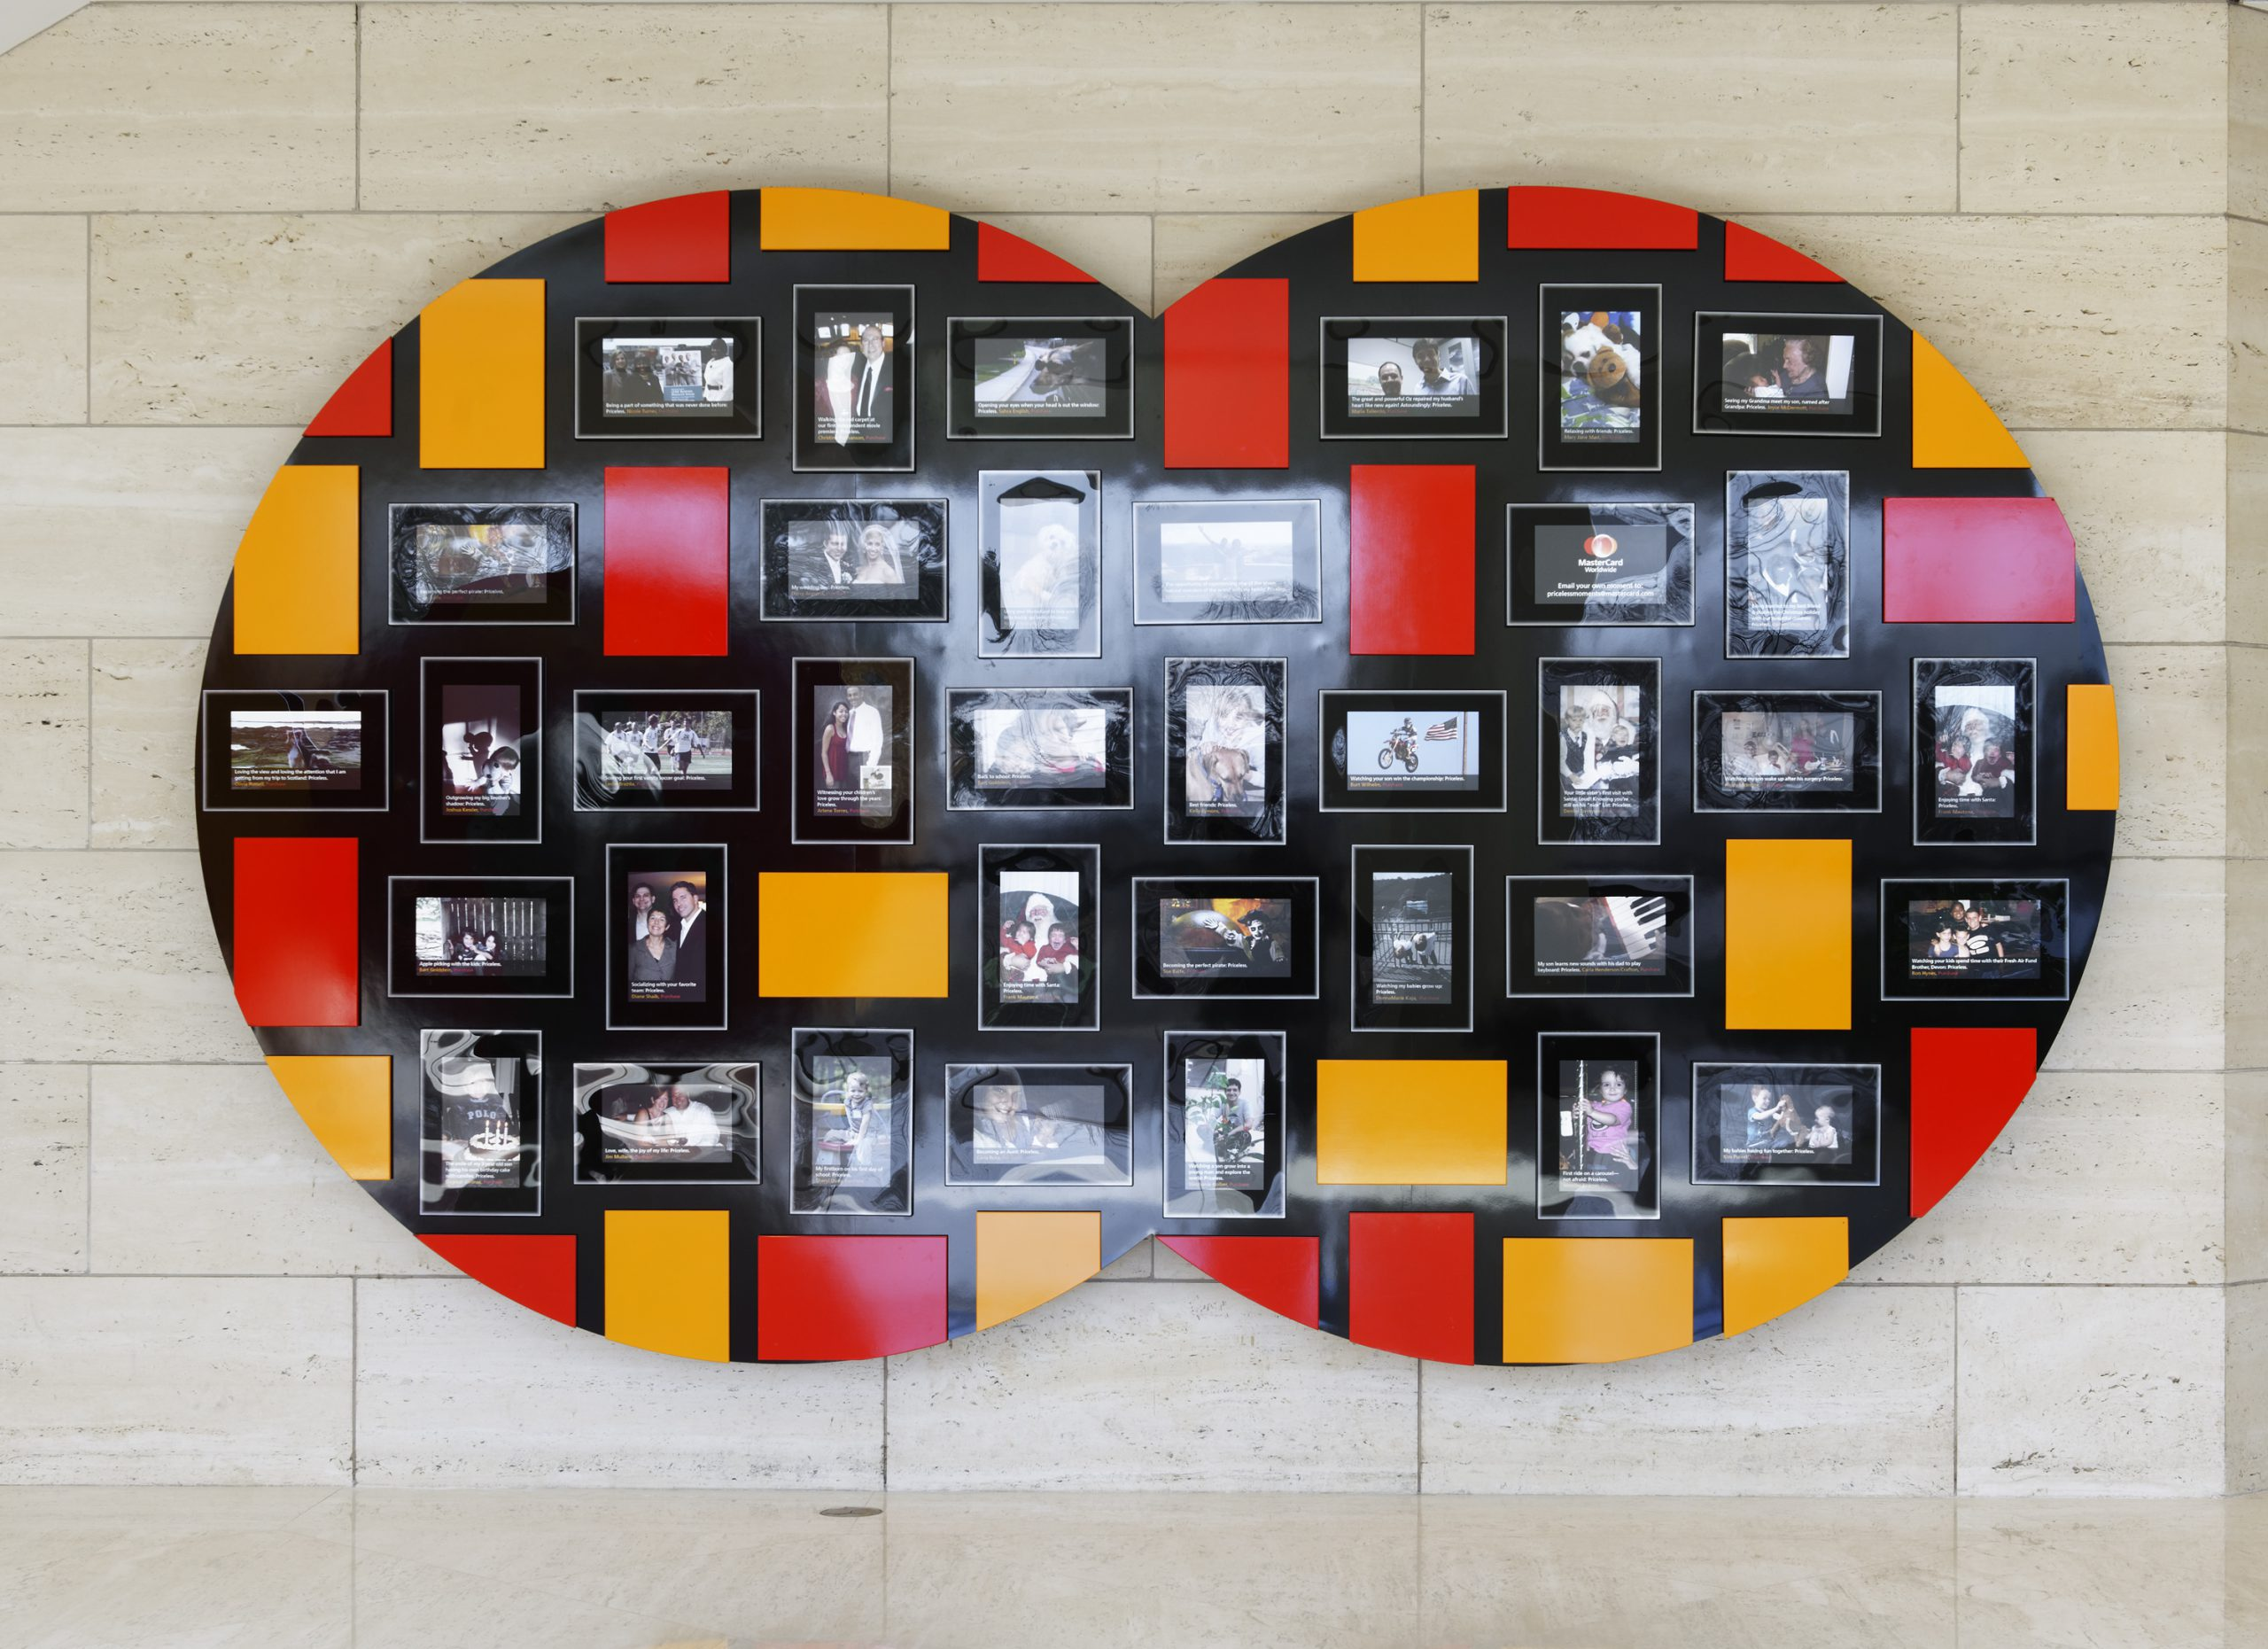 Project image 1 for MasterCard Project Spirit - Priceless Faces Wall, MasterCard Worldwide